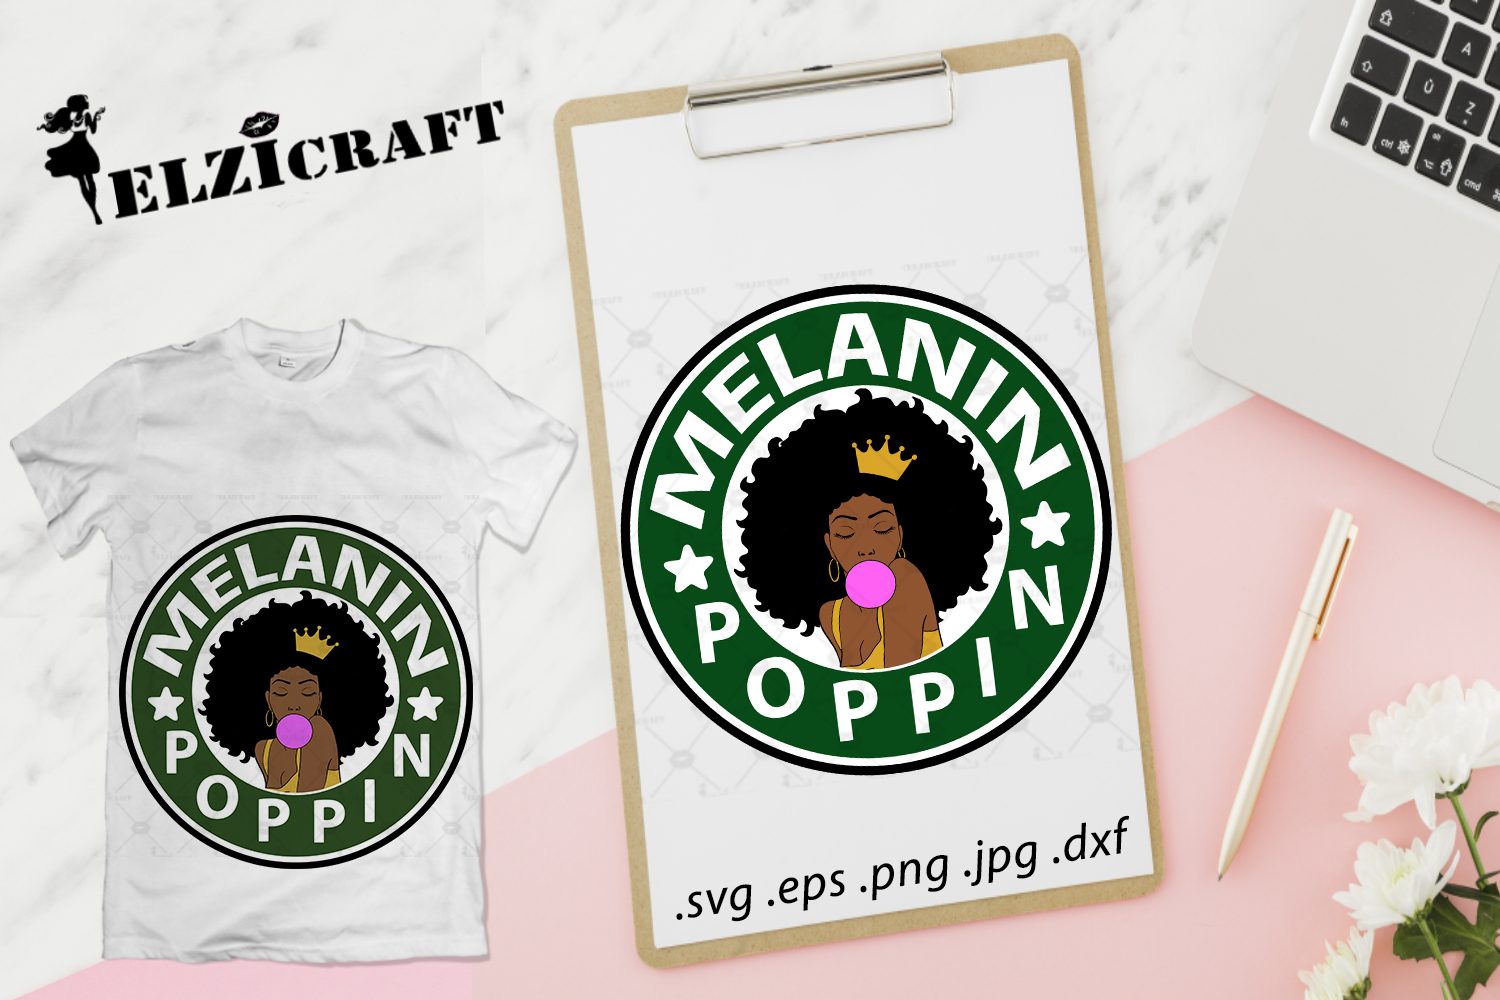 Afro Woman Melanin Poppin Design Graphic By Elzicraft Creative